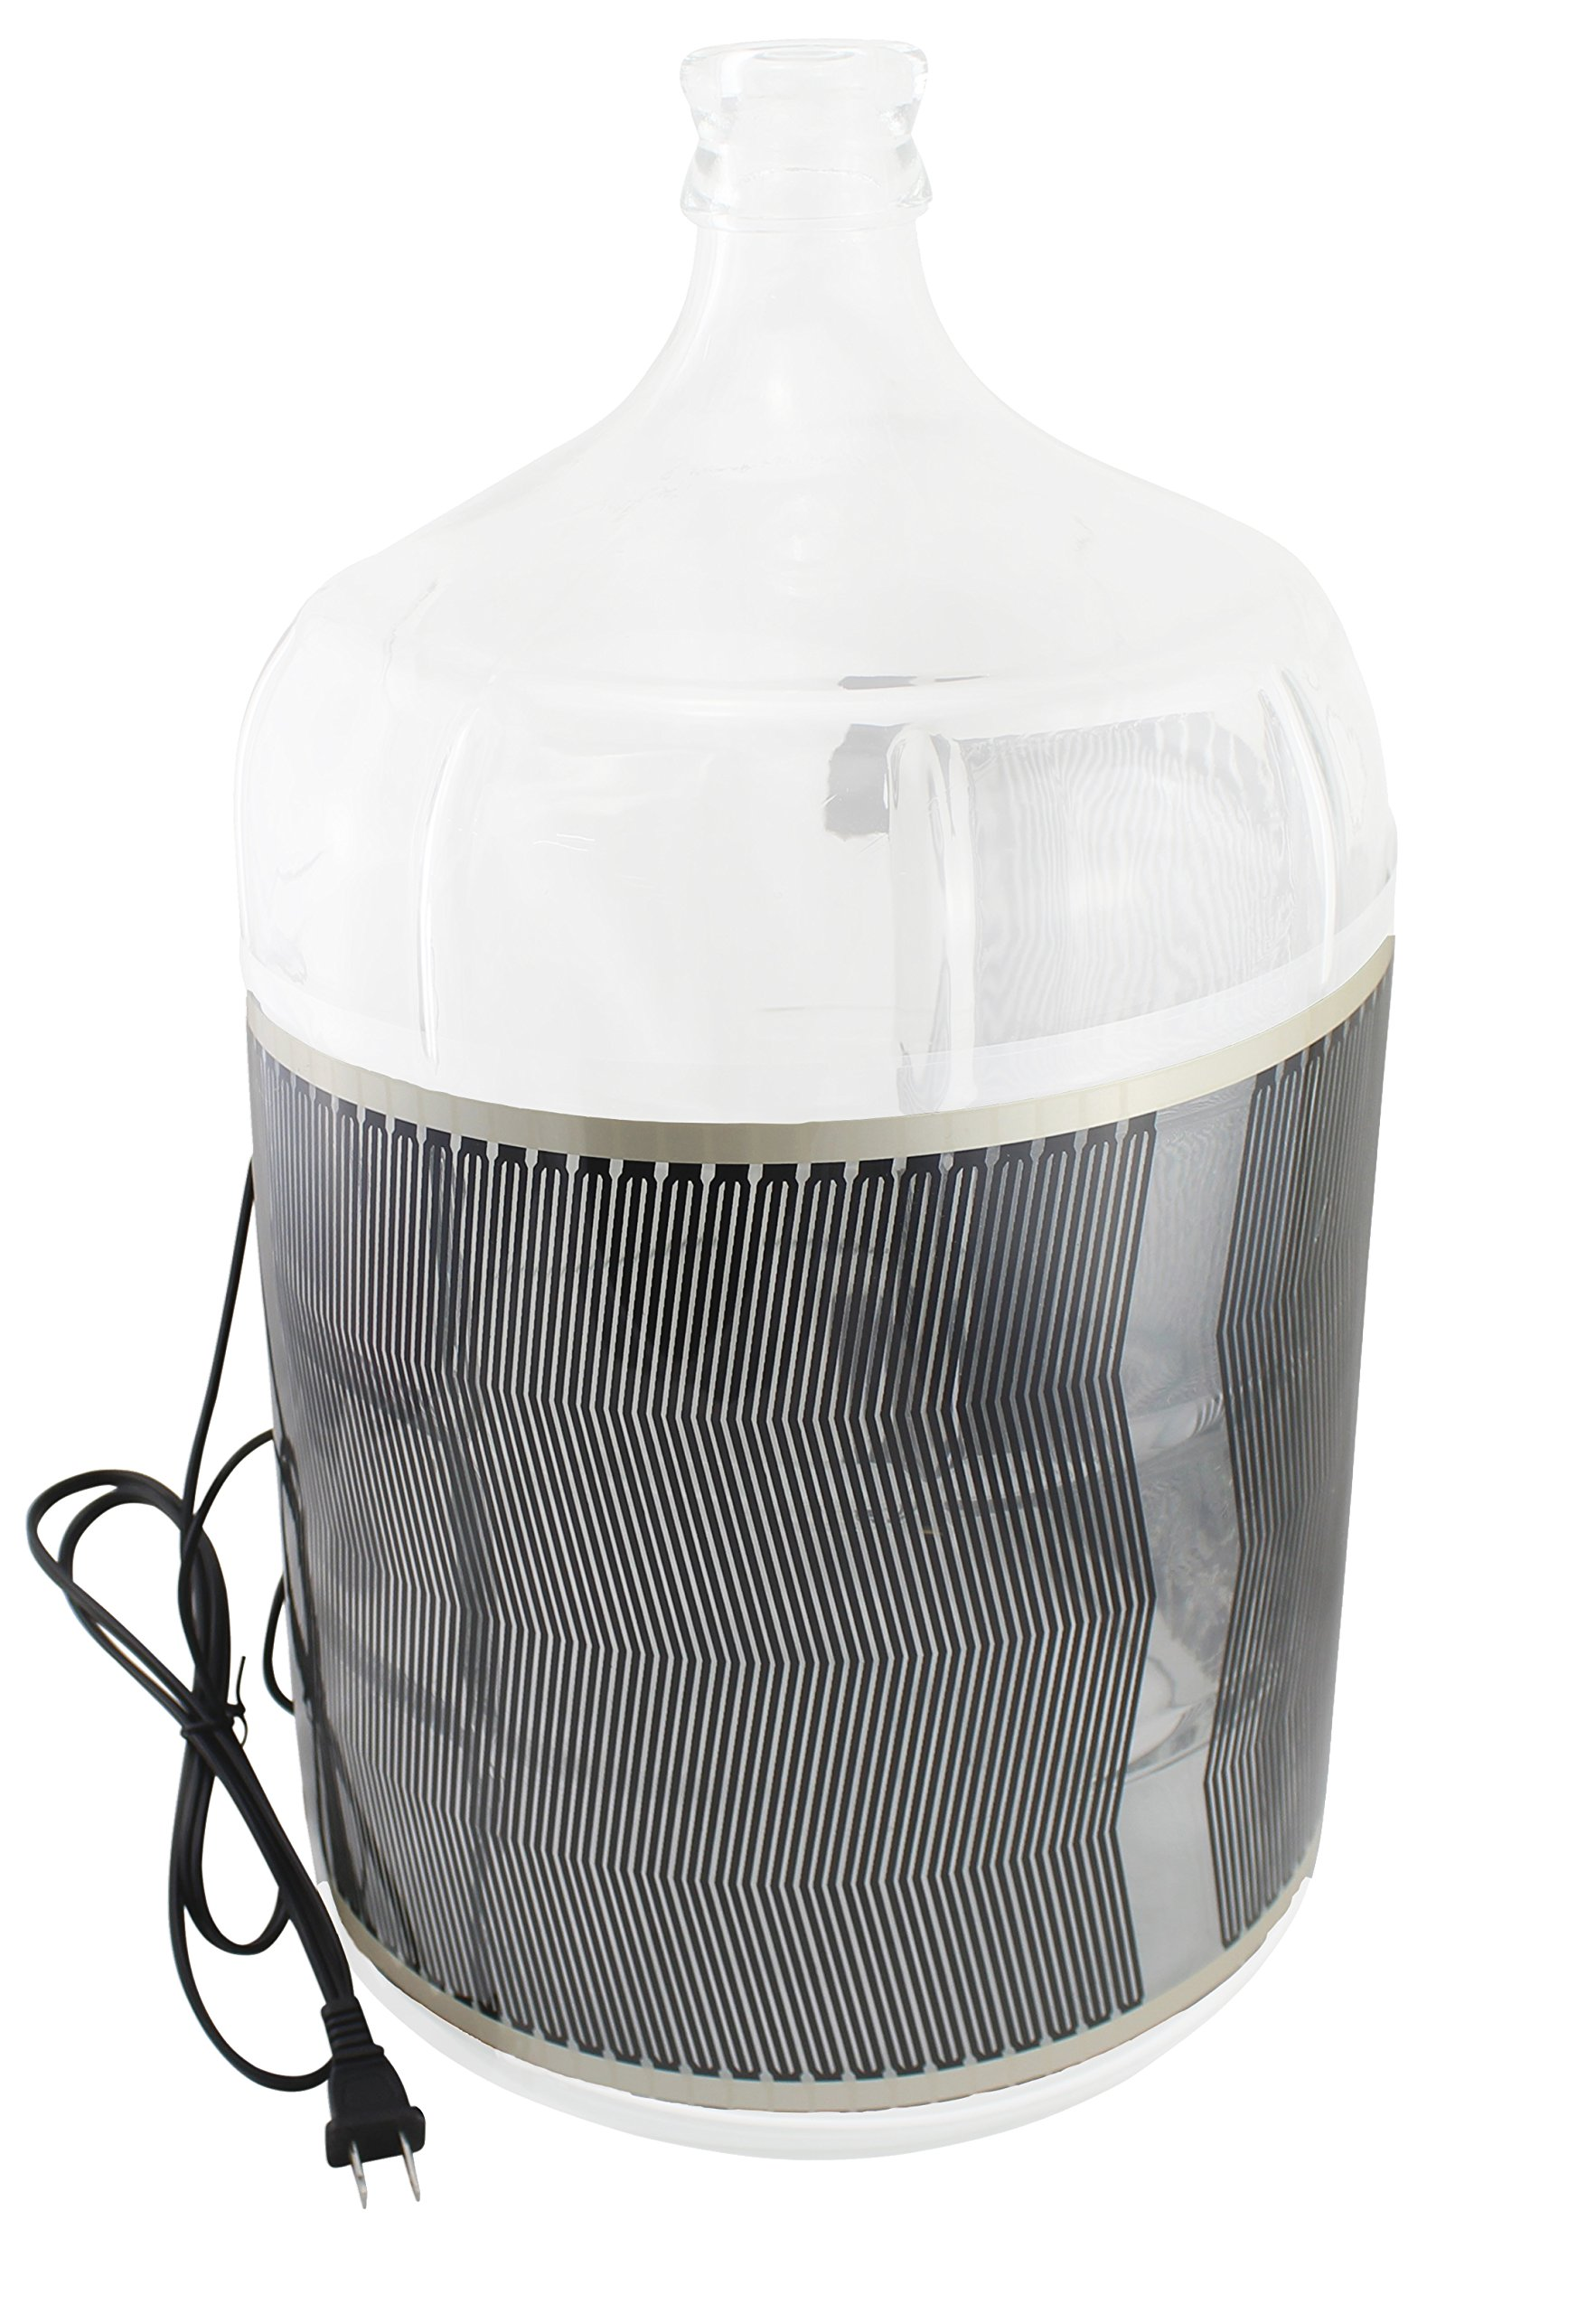 Fermentation Heater by The Weekend Brewer